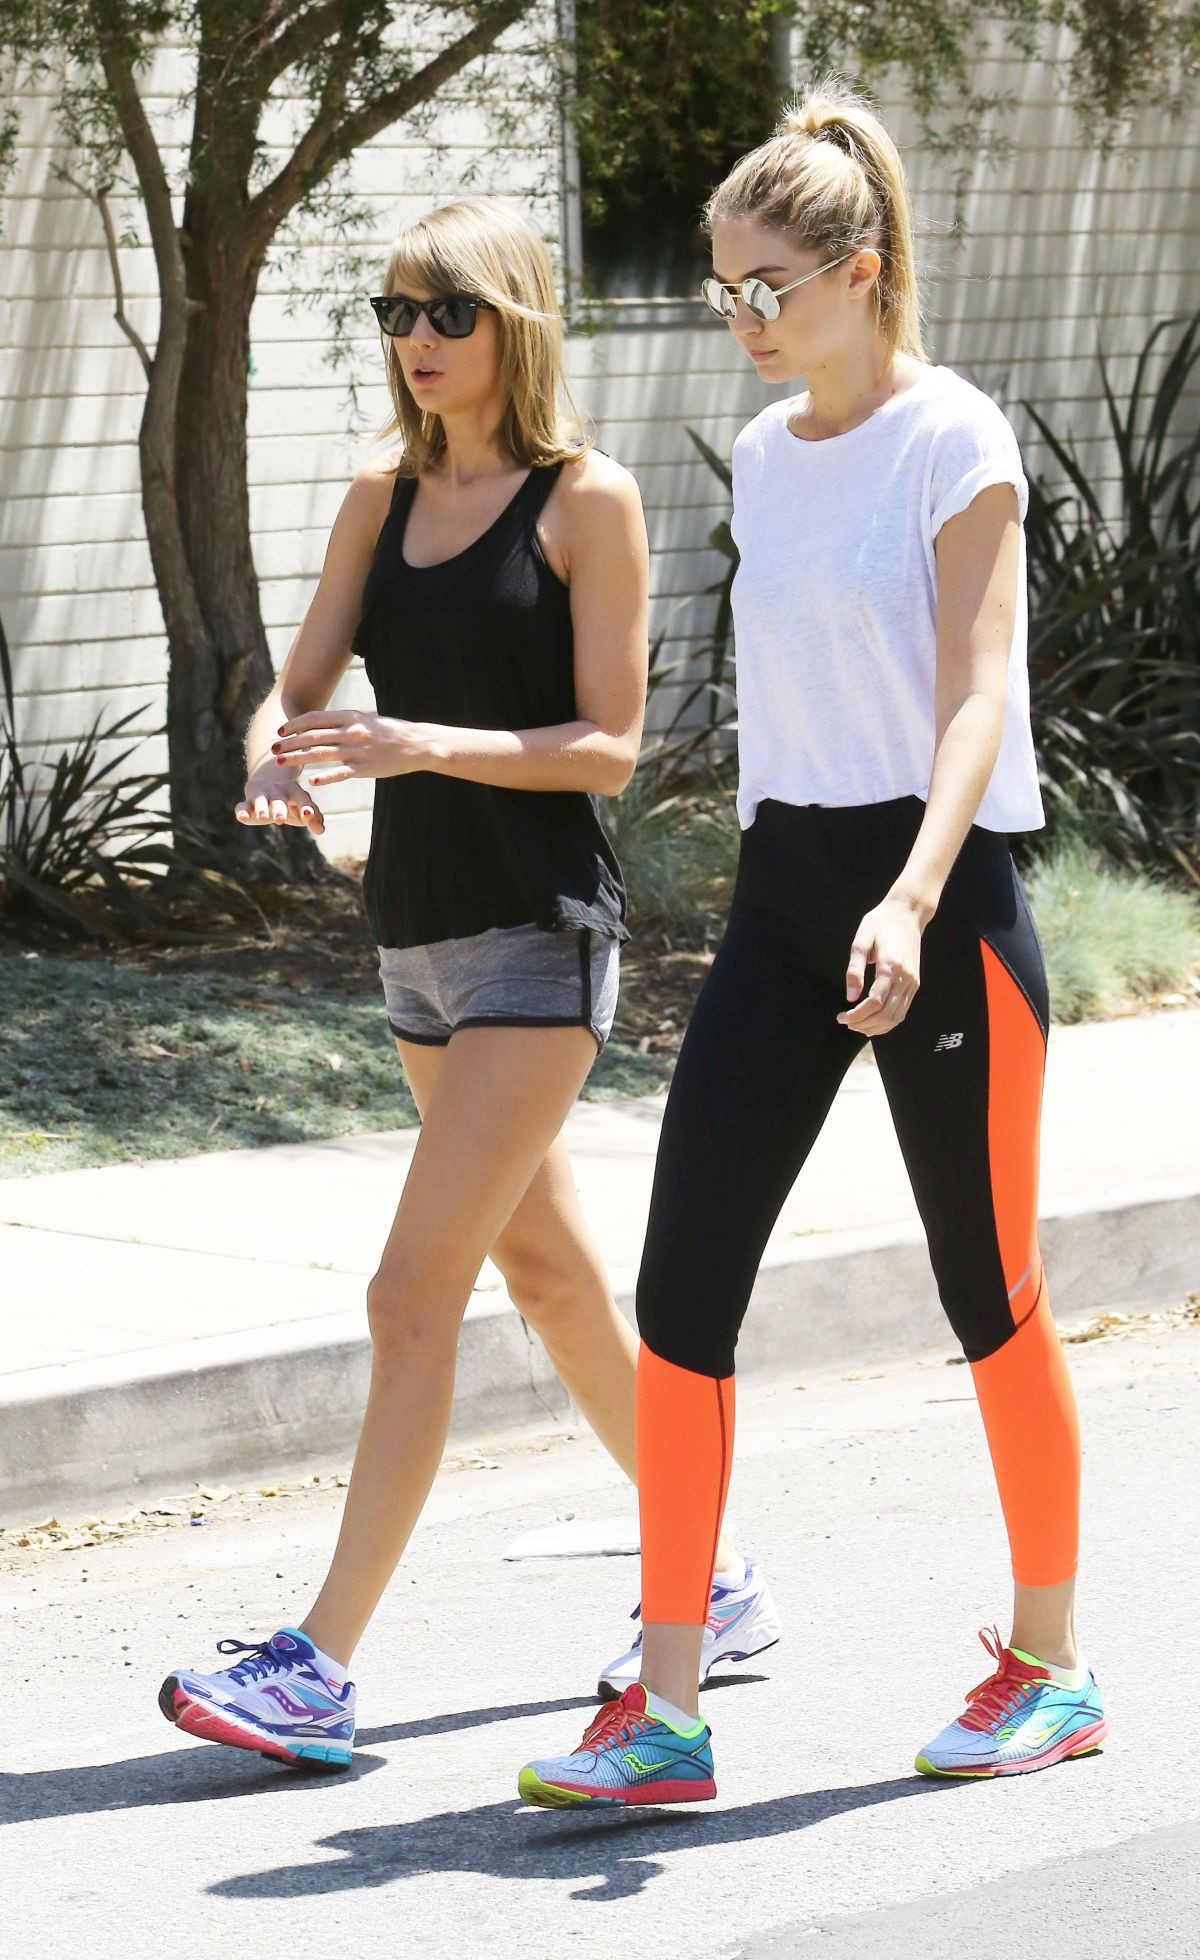 Formular Humedal aprobar  taylor-swift-and-gigi-hadid-out-for-a-walk-in-beverly-hills_27 – HawtCelebs